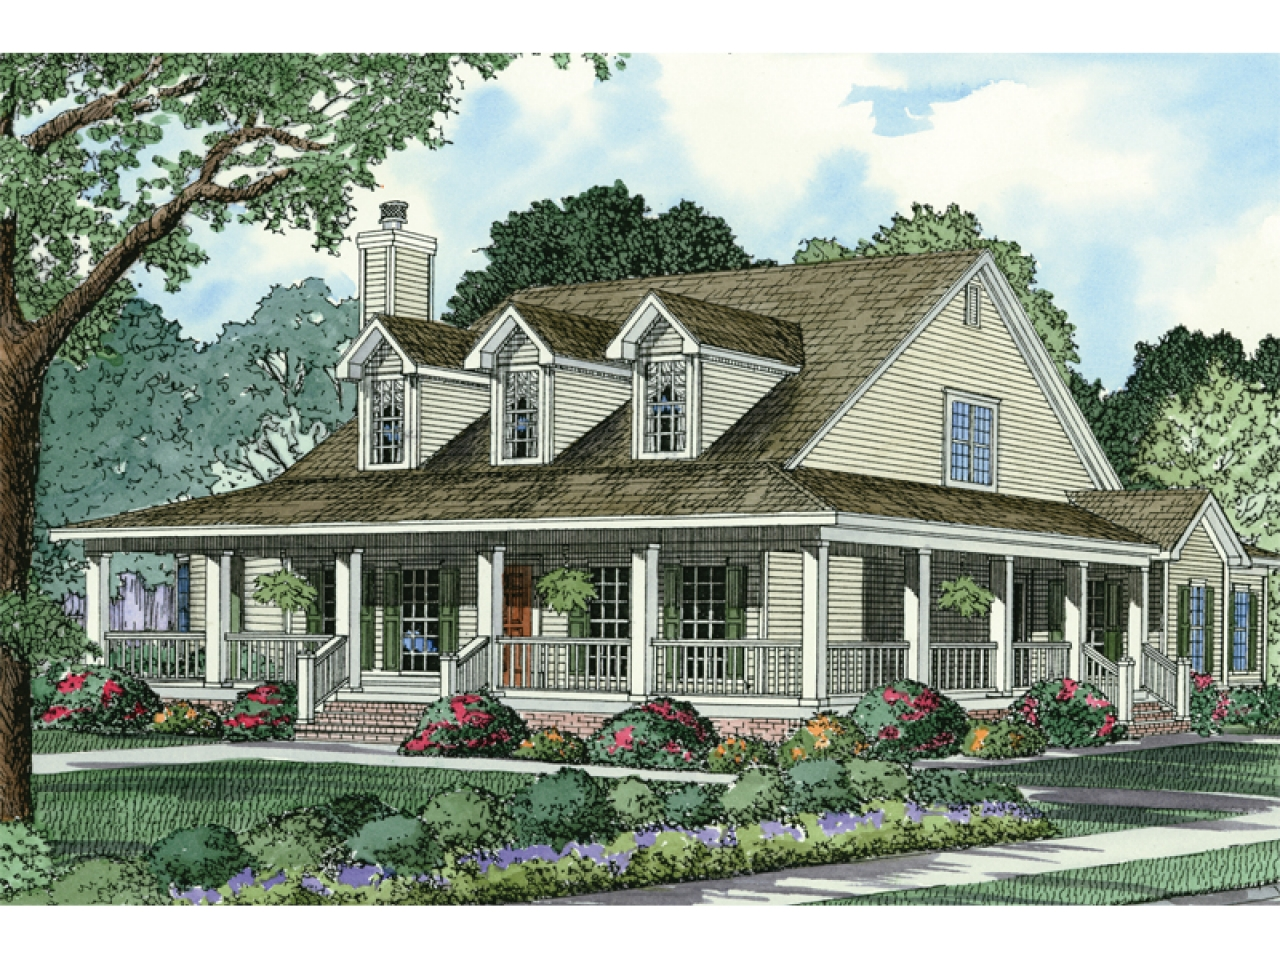 French Country Small House With Wrap Around Porch French Country House Plans Country Style House Plans With